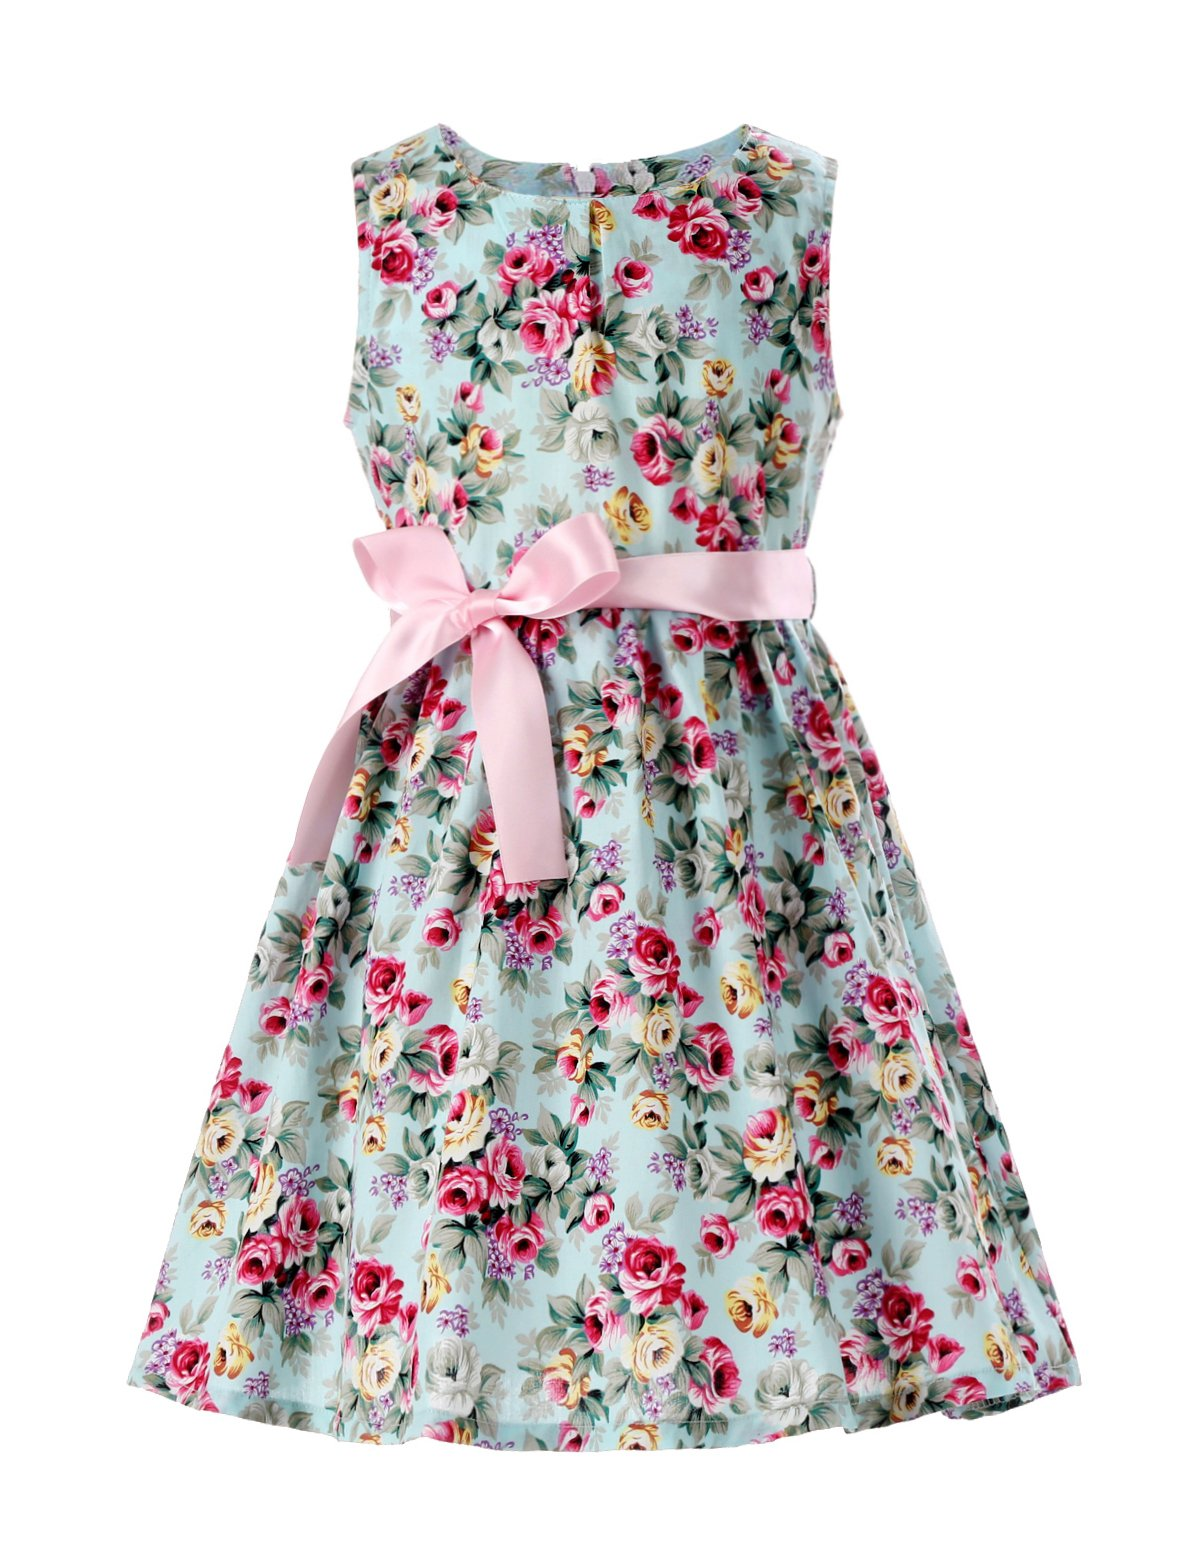 PrinceSasa Girls Summer Dresses Toddler Girl Clothes,Mint flower2,6-7 Years(Size 140)